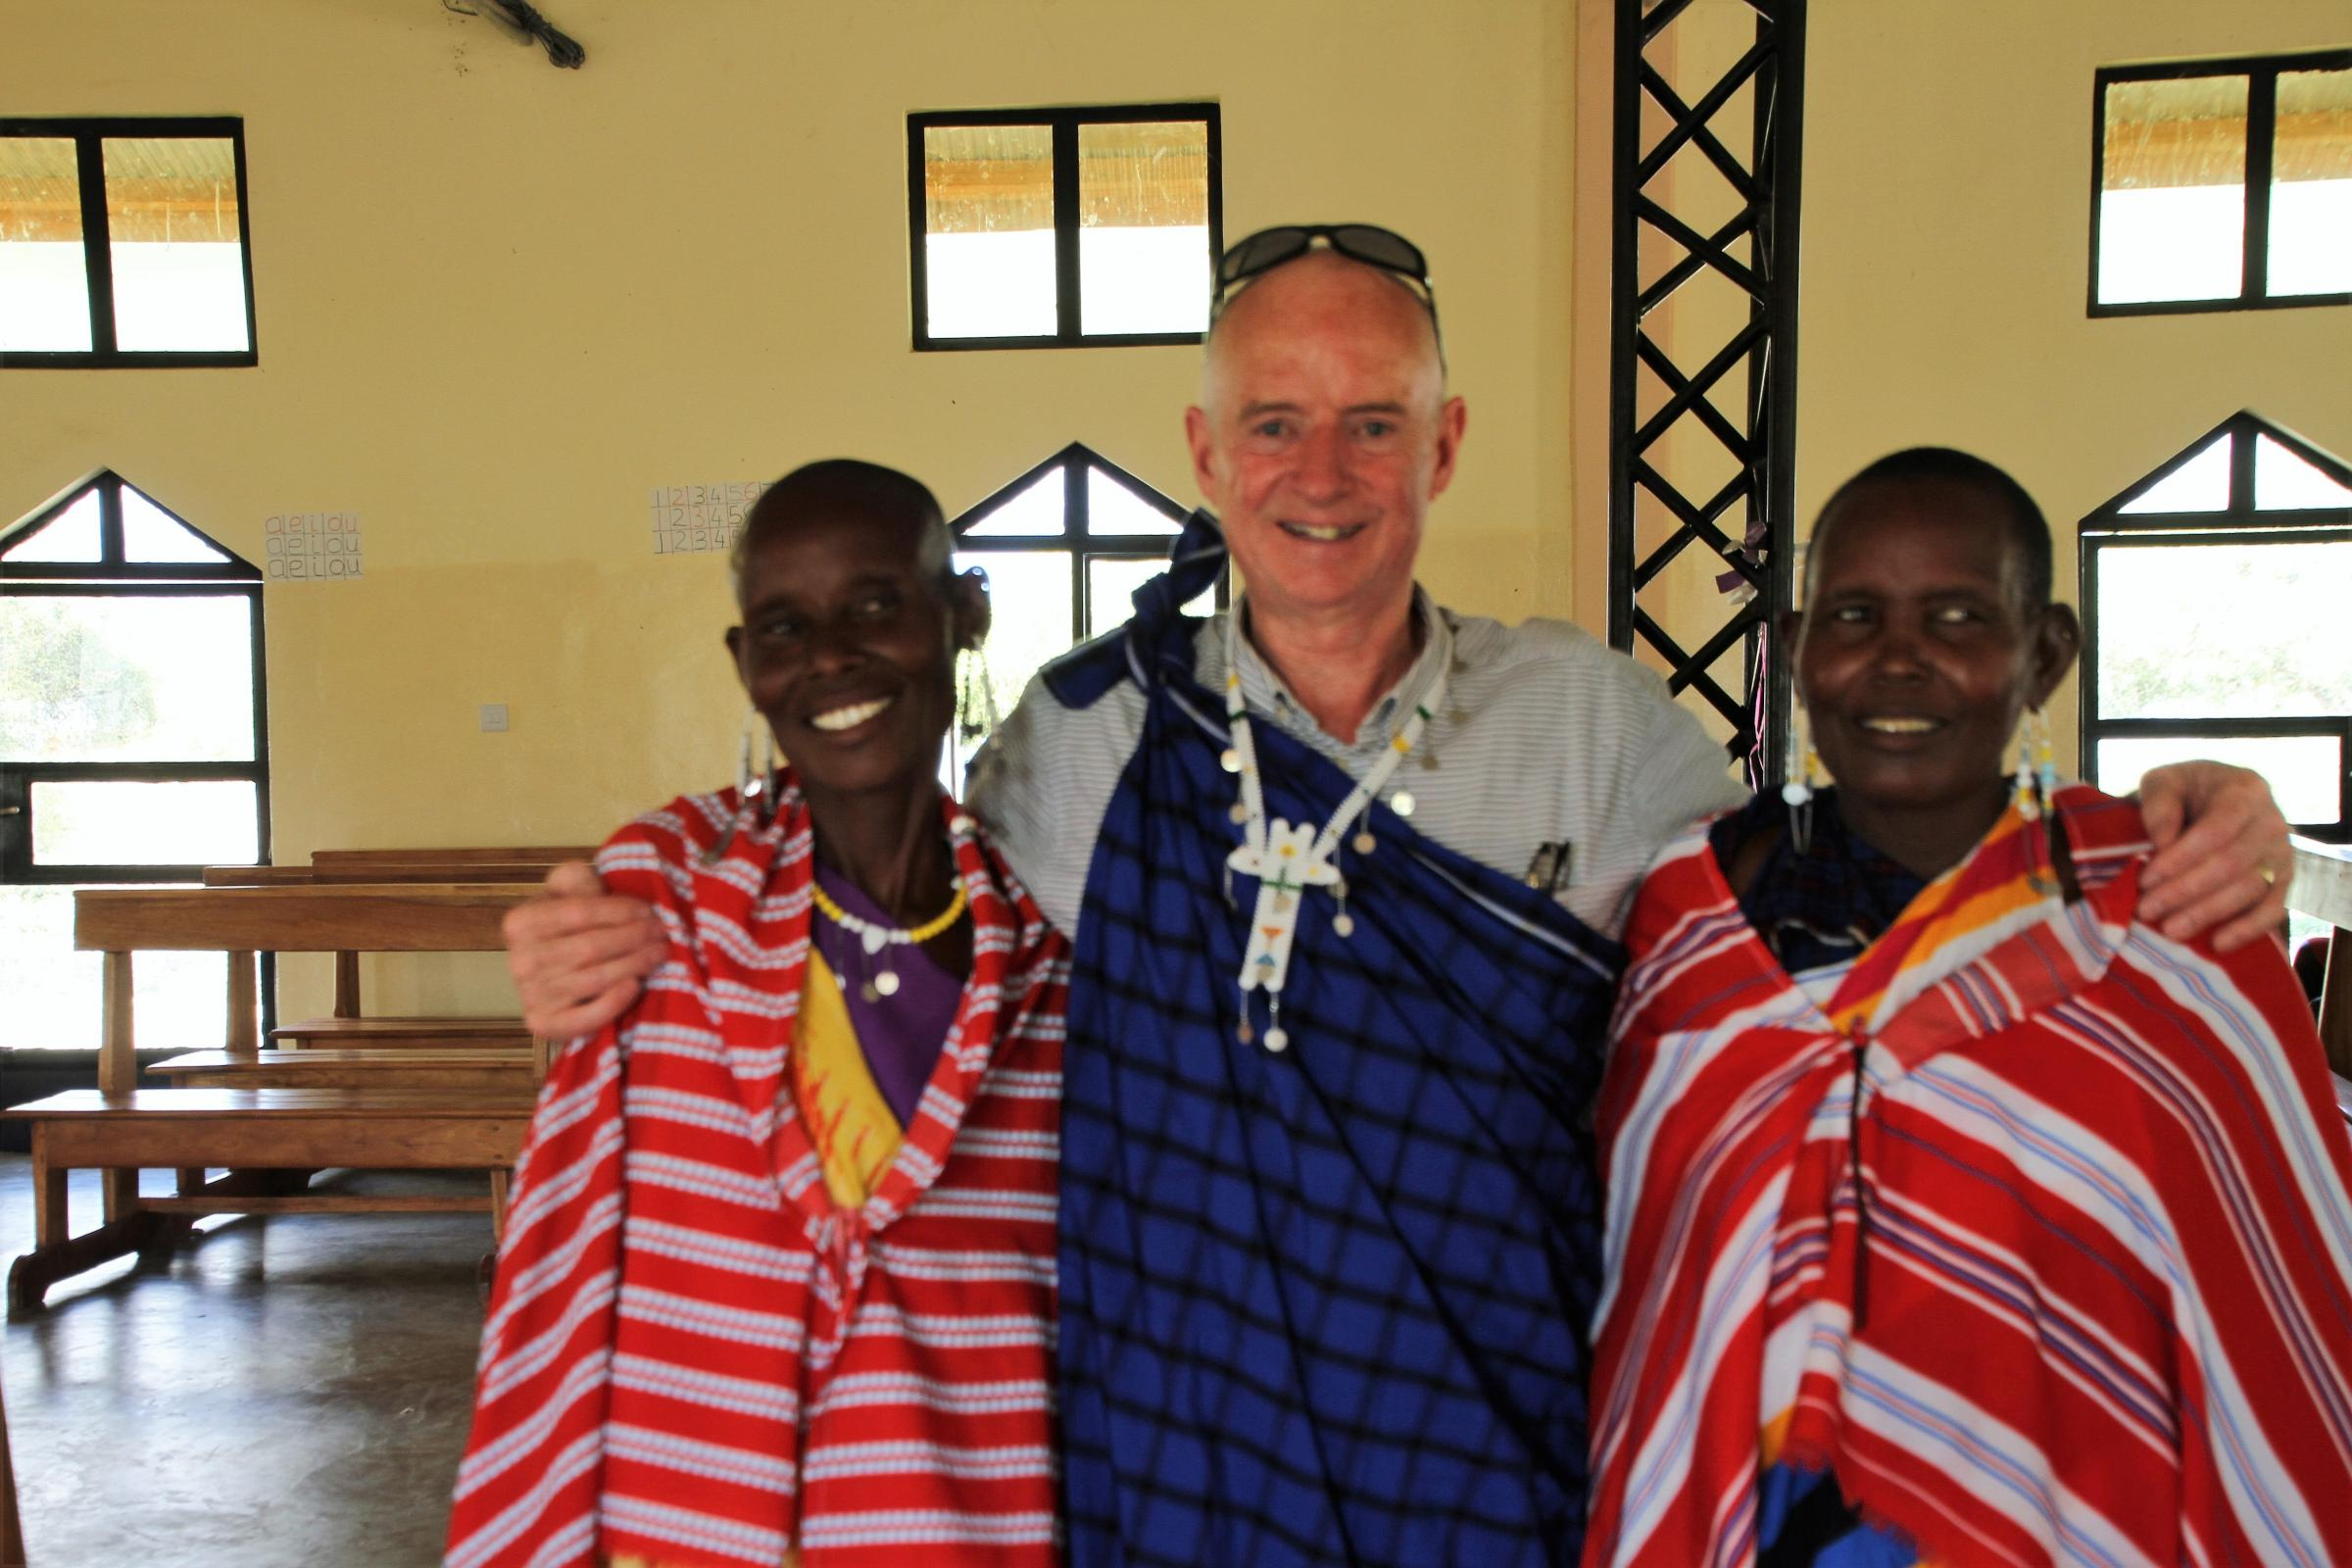 Jim O'Connor, from Esh Village, is returning to Tanzania with his charity Dorothy's Well Project Tanzania